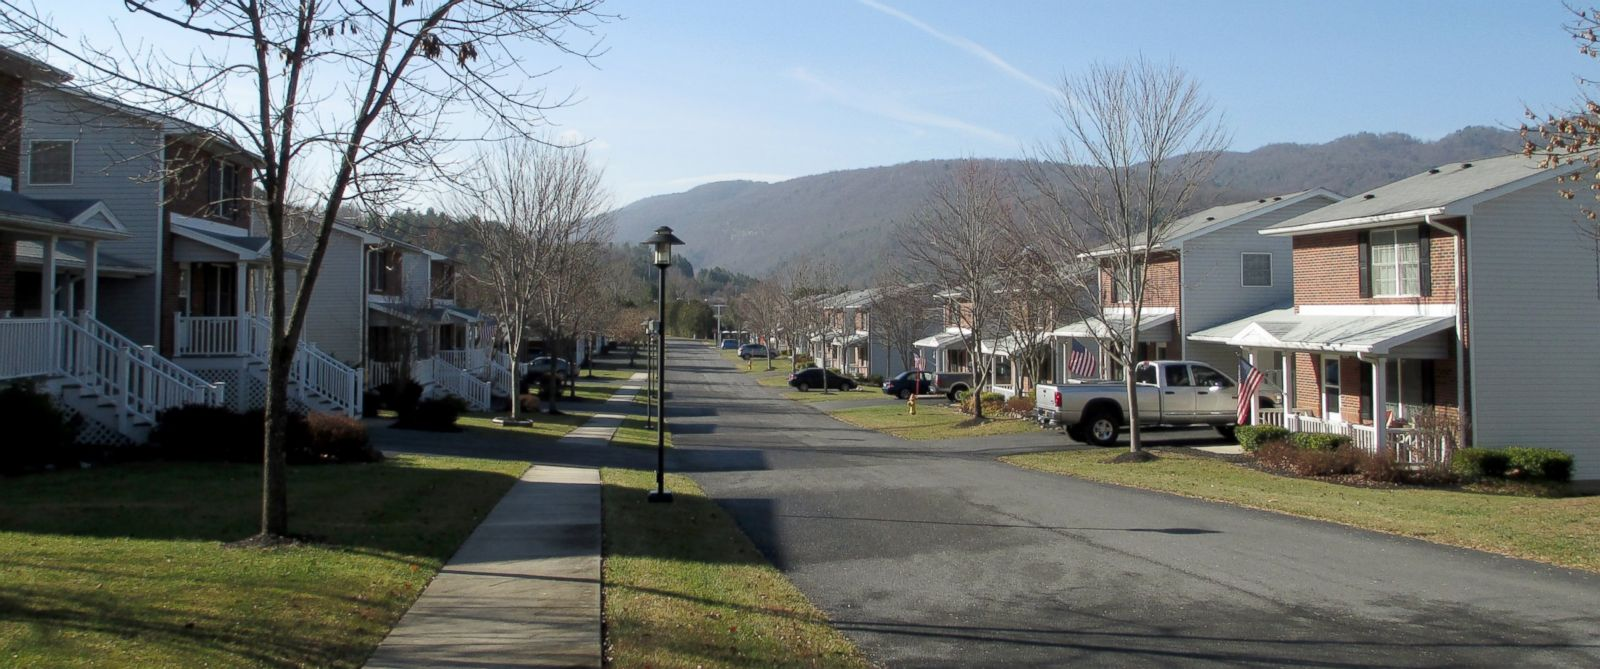 former nsa spy base in west virginia up for sale matthew aid